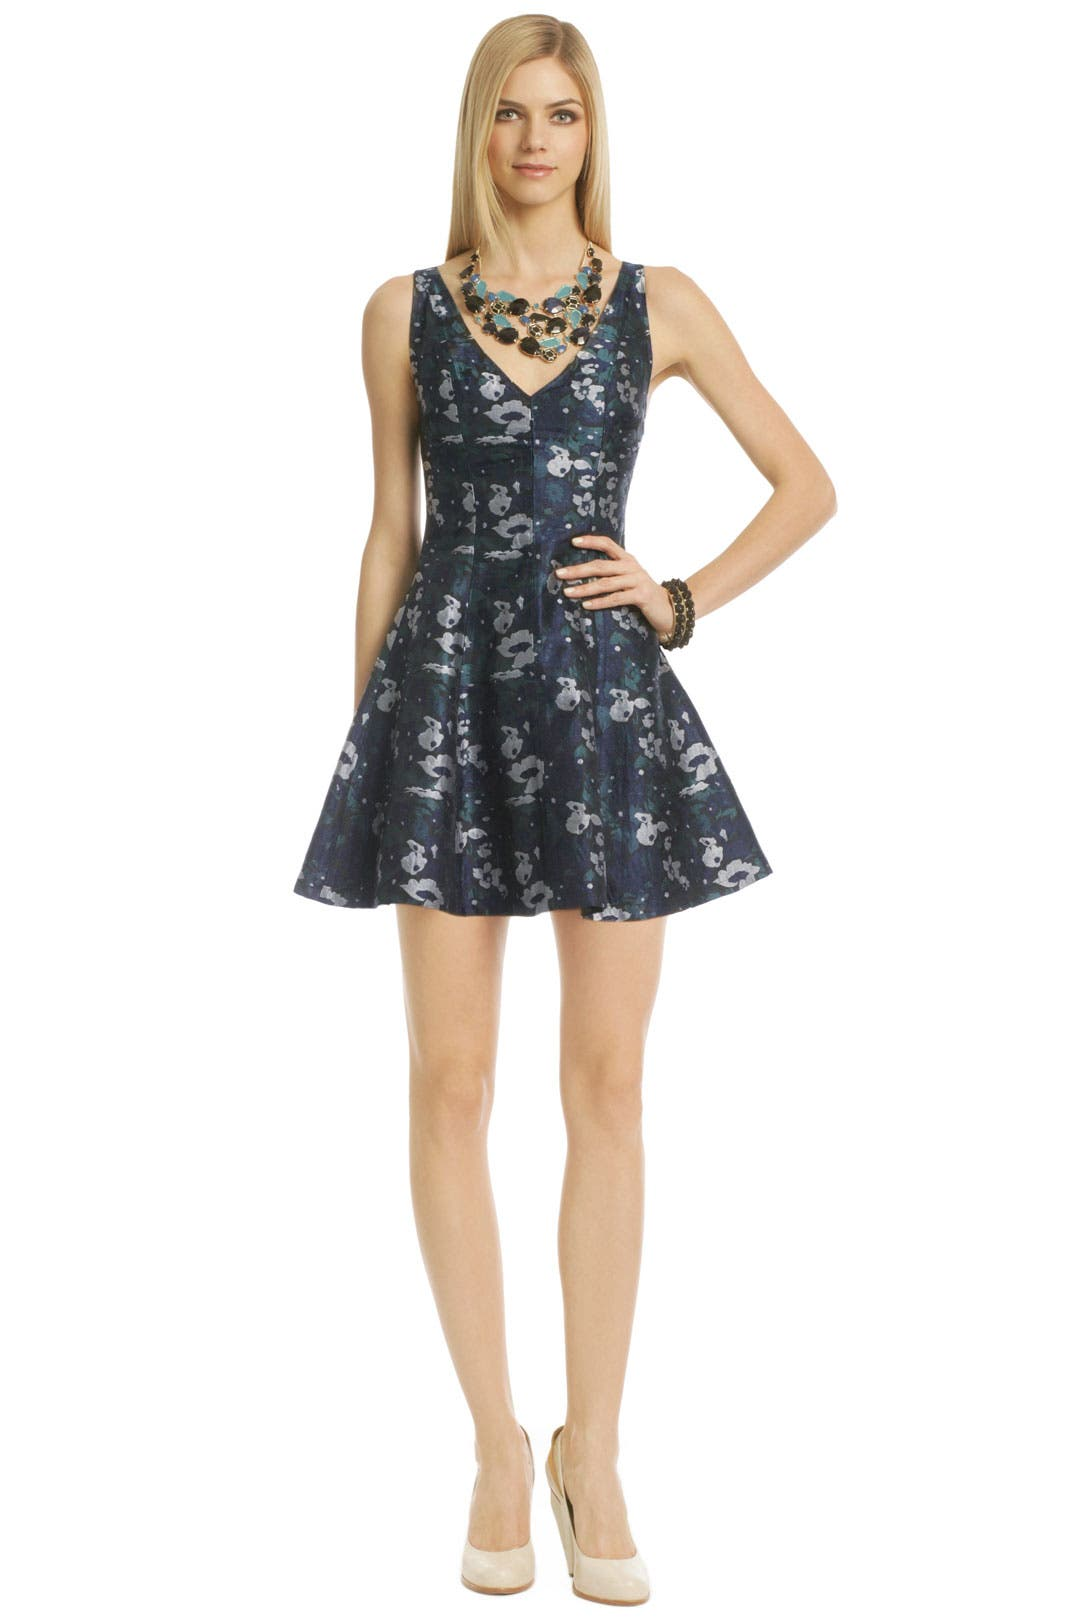 Floral Sunday Blues Dress by Opening Ceremony